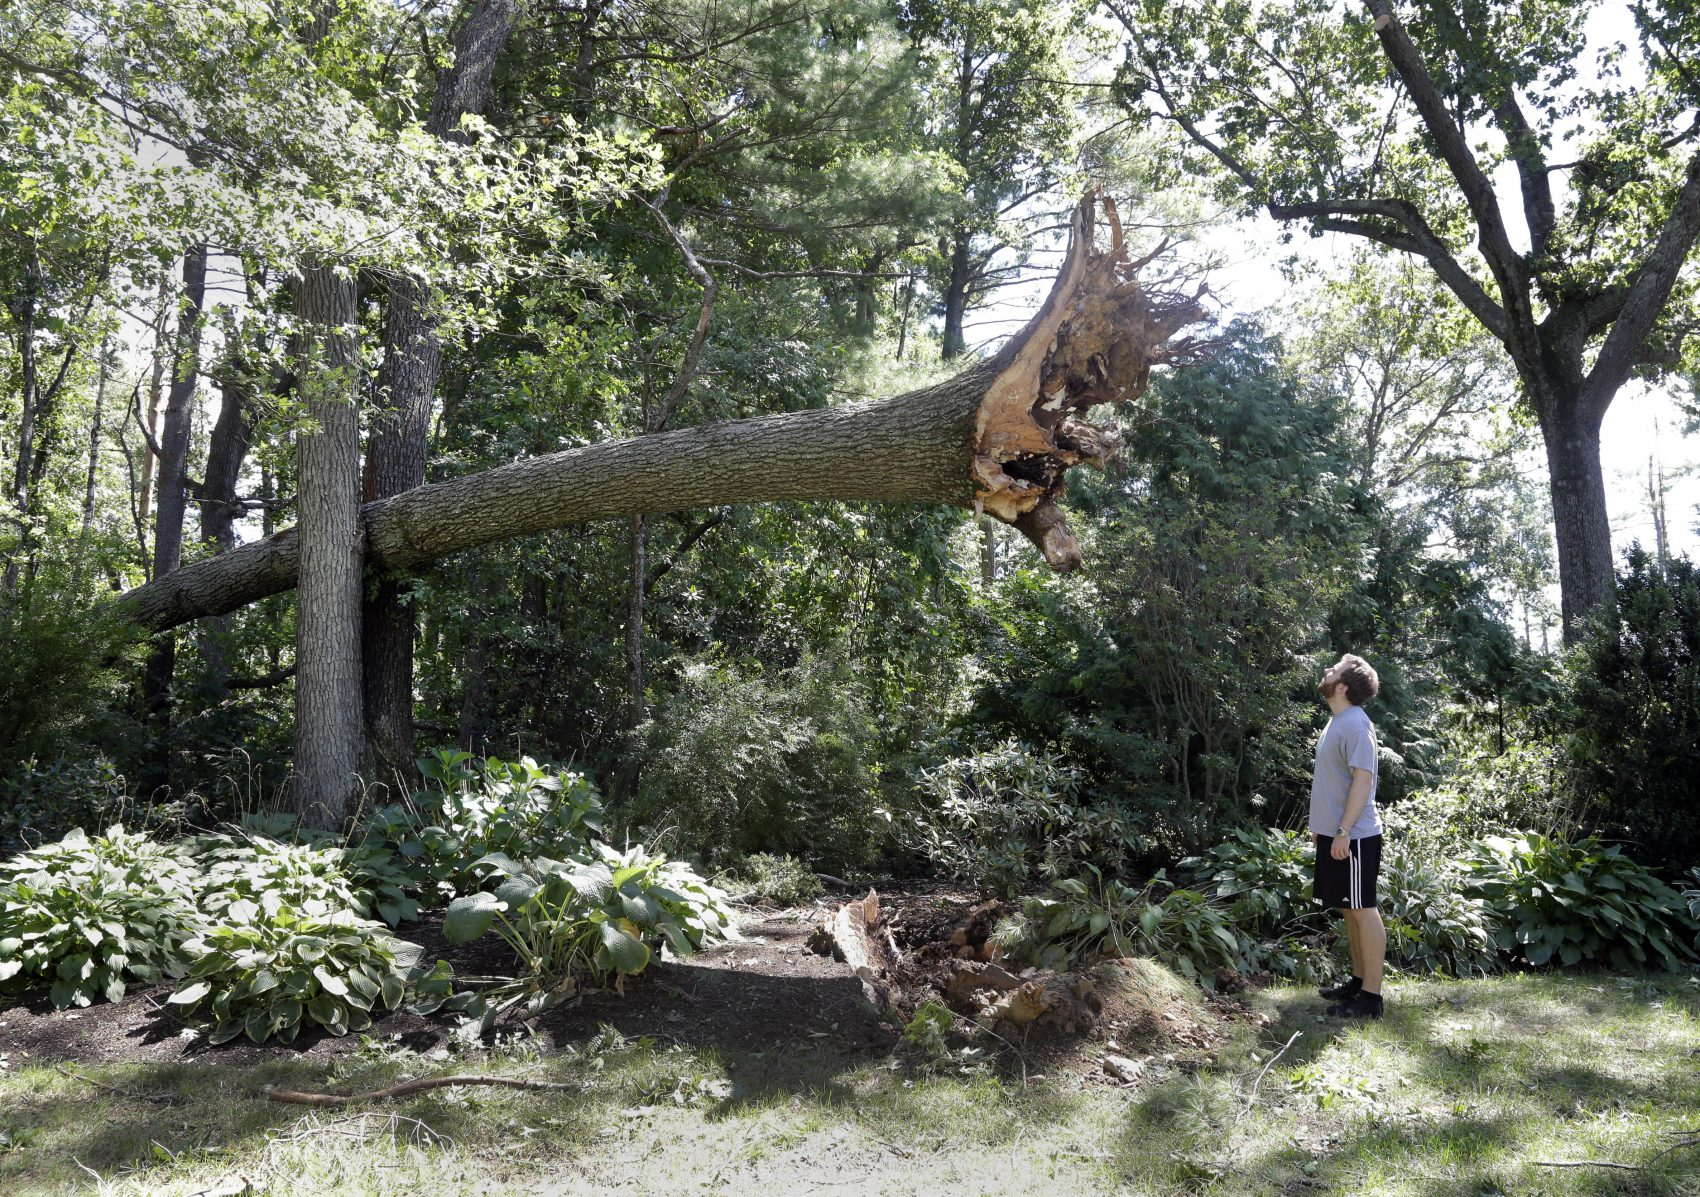 Ian Thompson looks at a tree uprooted in his Concord neighborhood after an EF-1 tornado touched down early Monday morning. (Elise Amendola/AP)